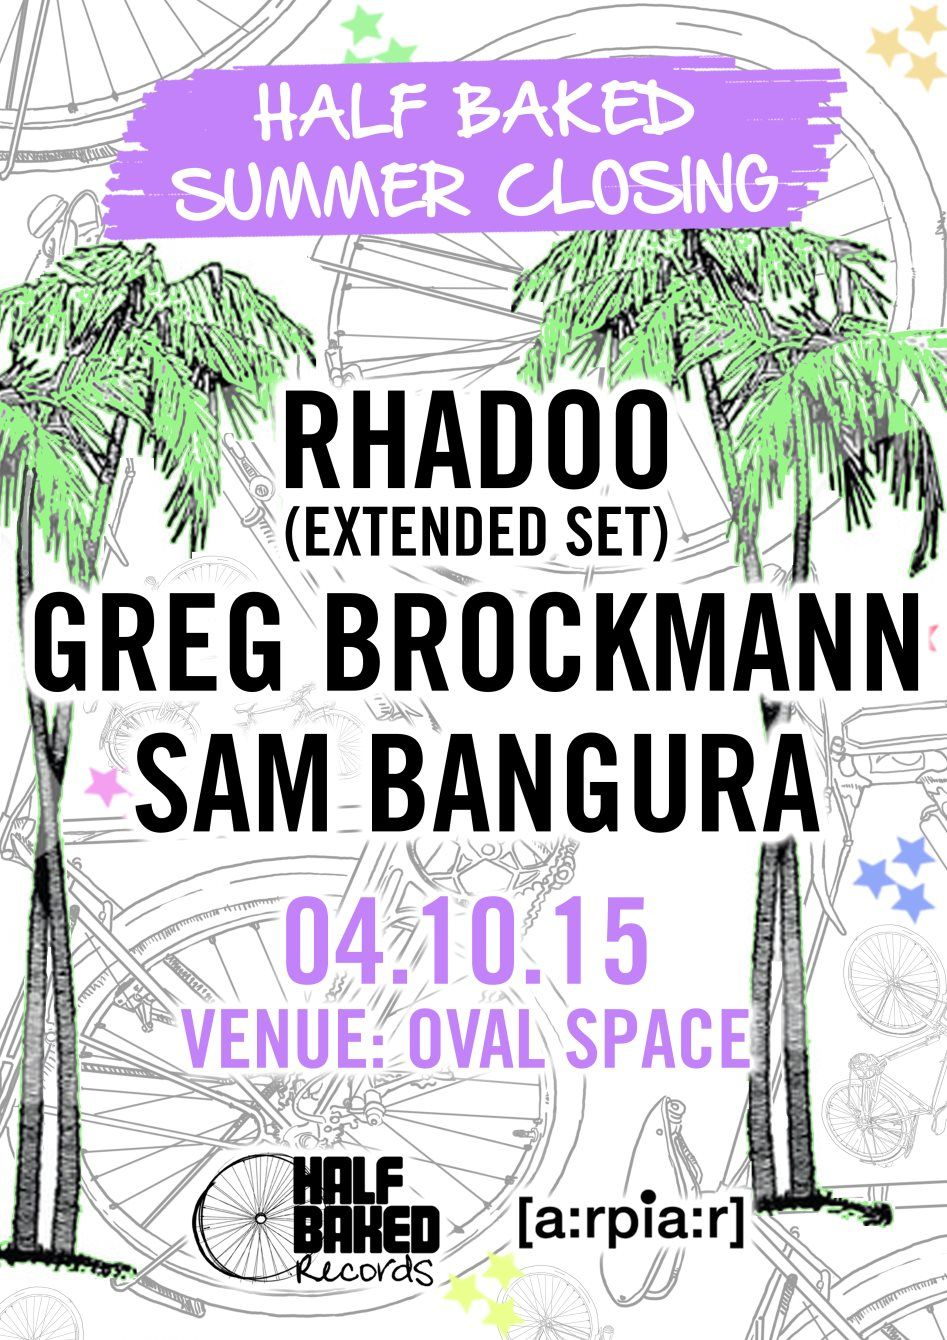 2015.10.04_-_hb_summer_closing_with_rhadoo_greg_brockmann_sam_bangura.jpg